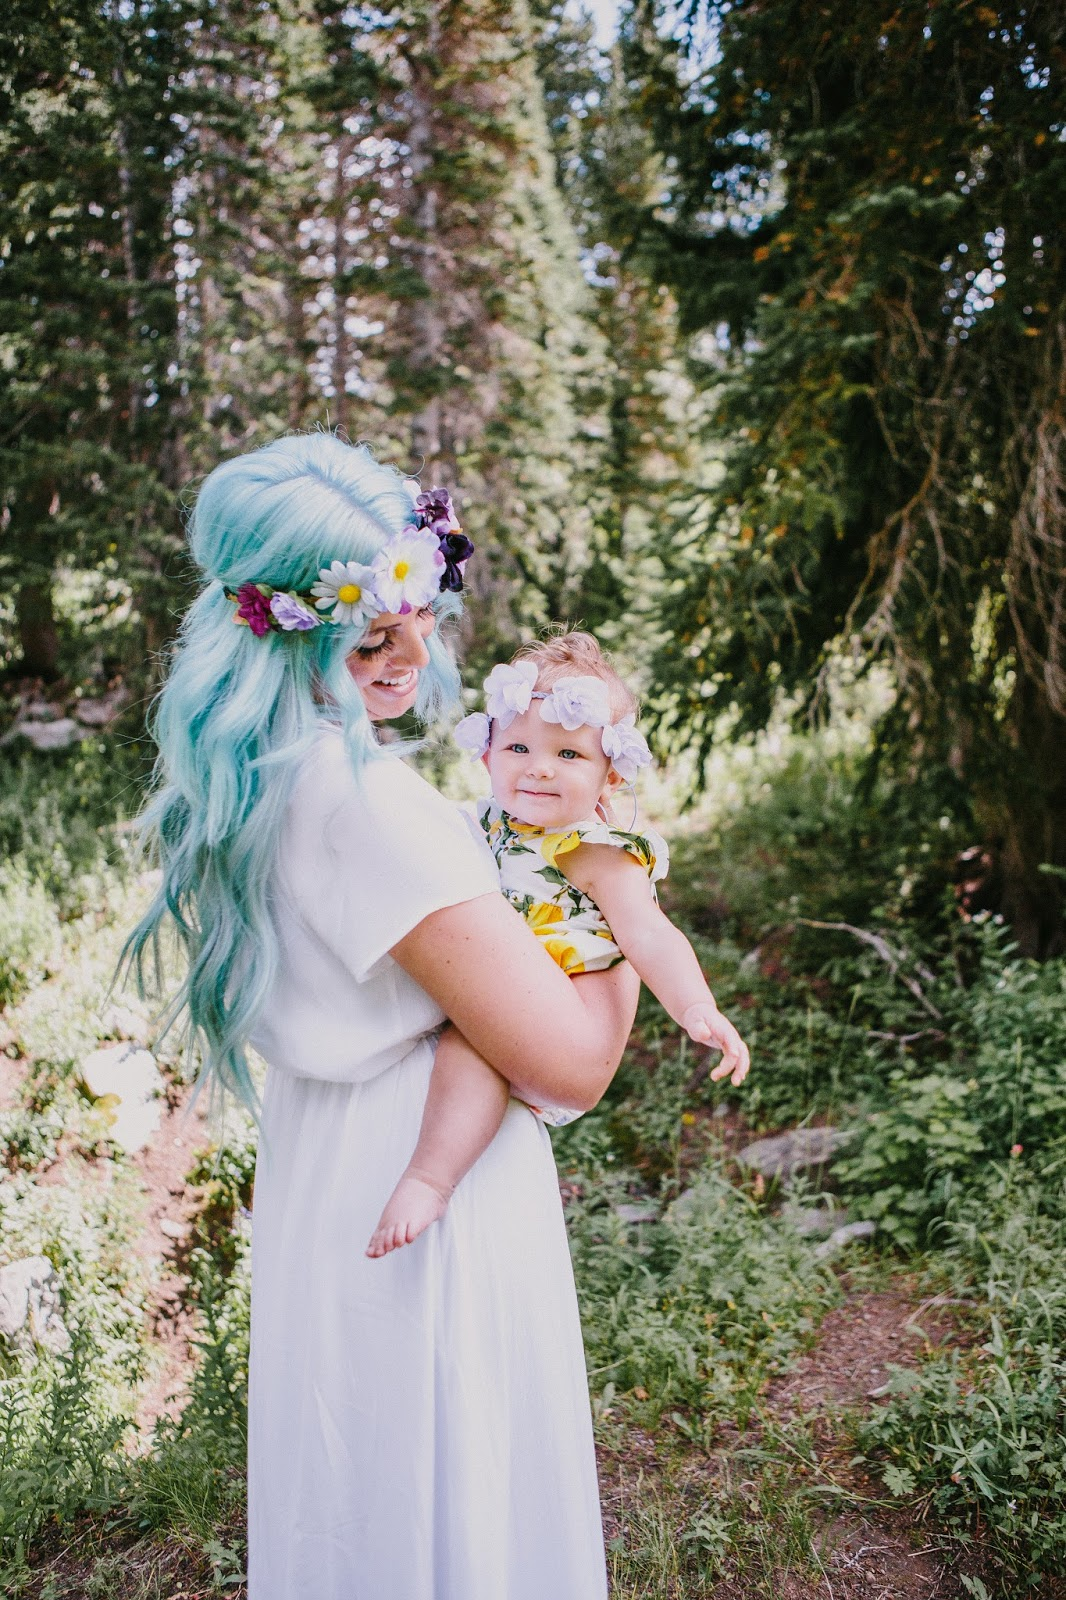 Mermaid Hair, Mommy and Me photoshoot, Headbands of Hope